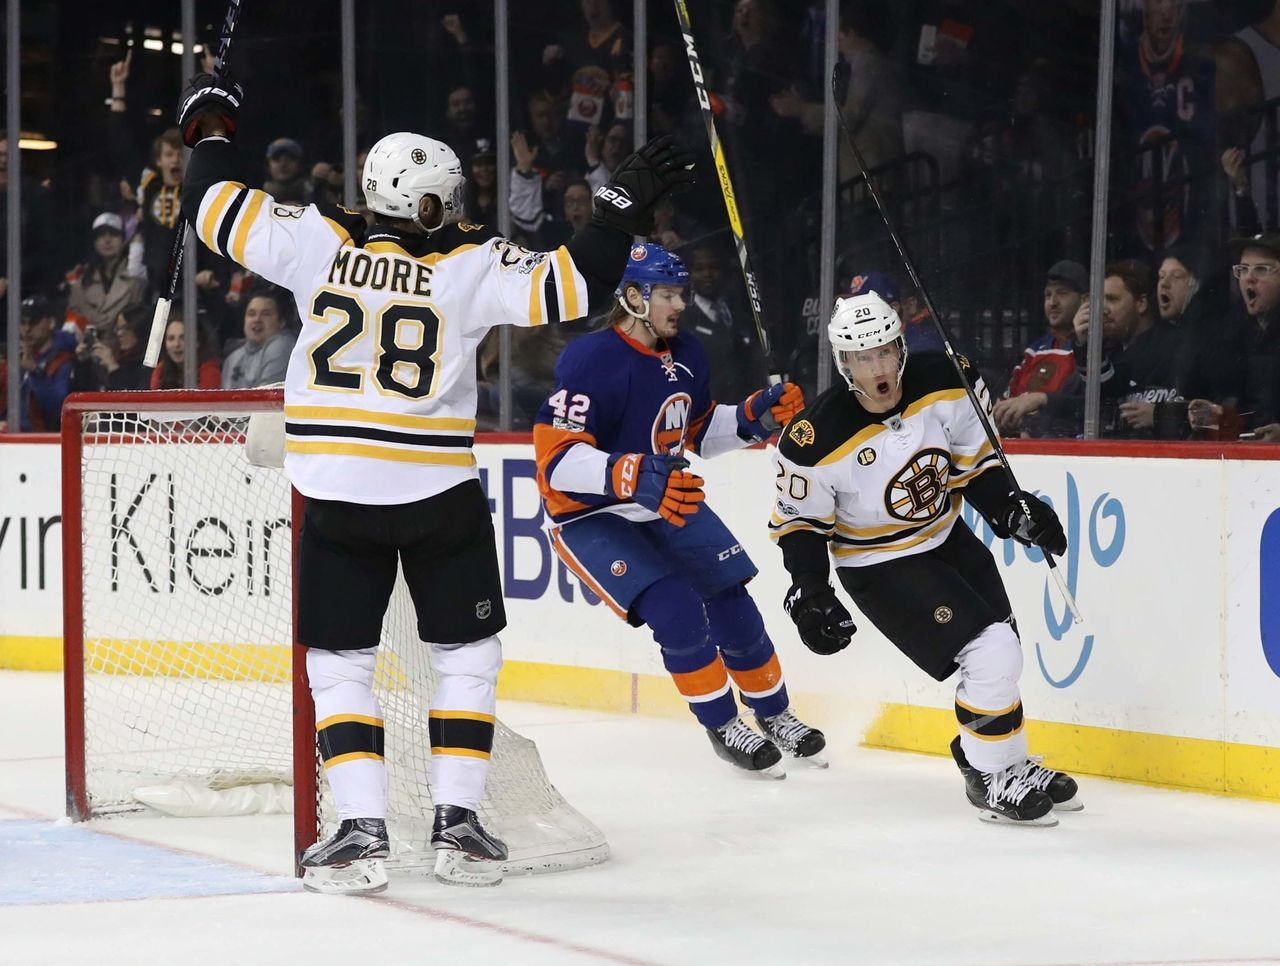 Cropped_2017-03-26t000132z_1332087353_nocid_rtrmadp_3_nhl-boston-bruins-at-new-york-islanders